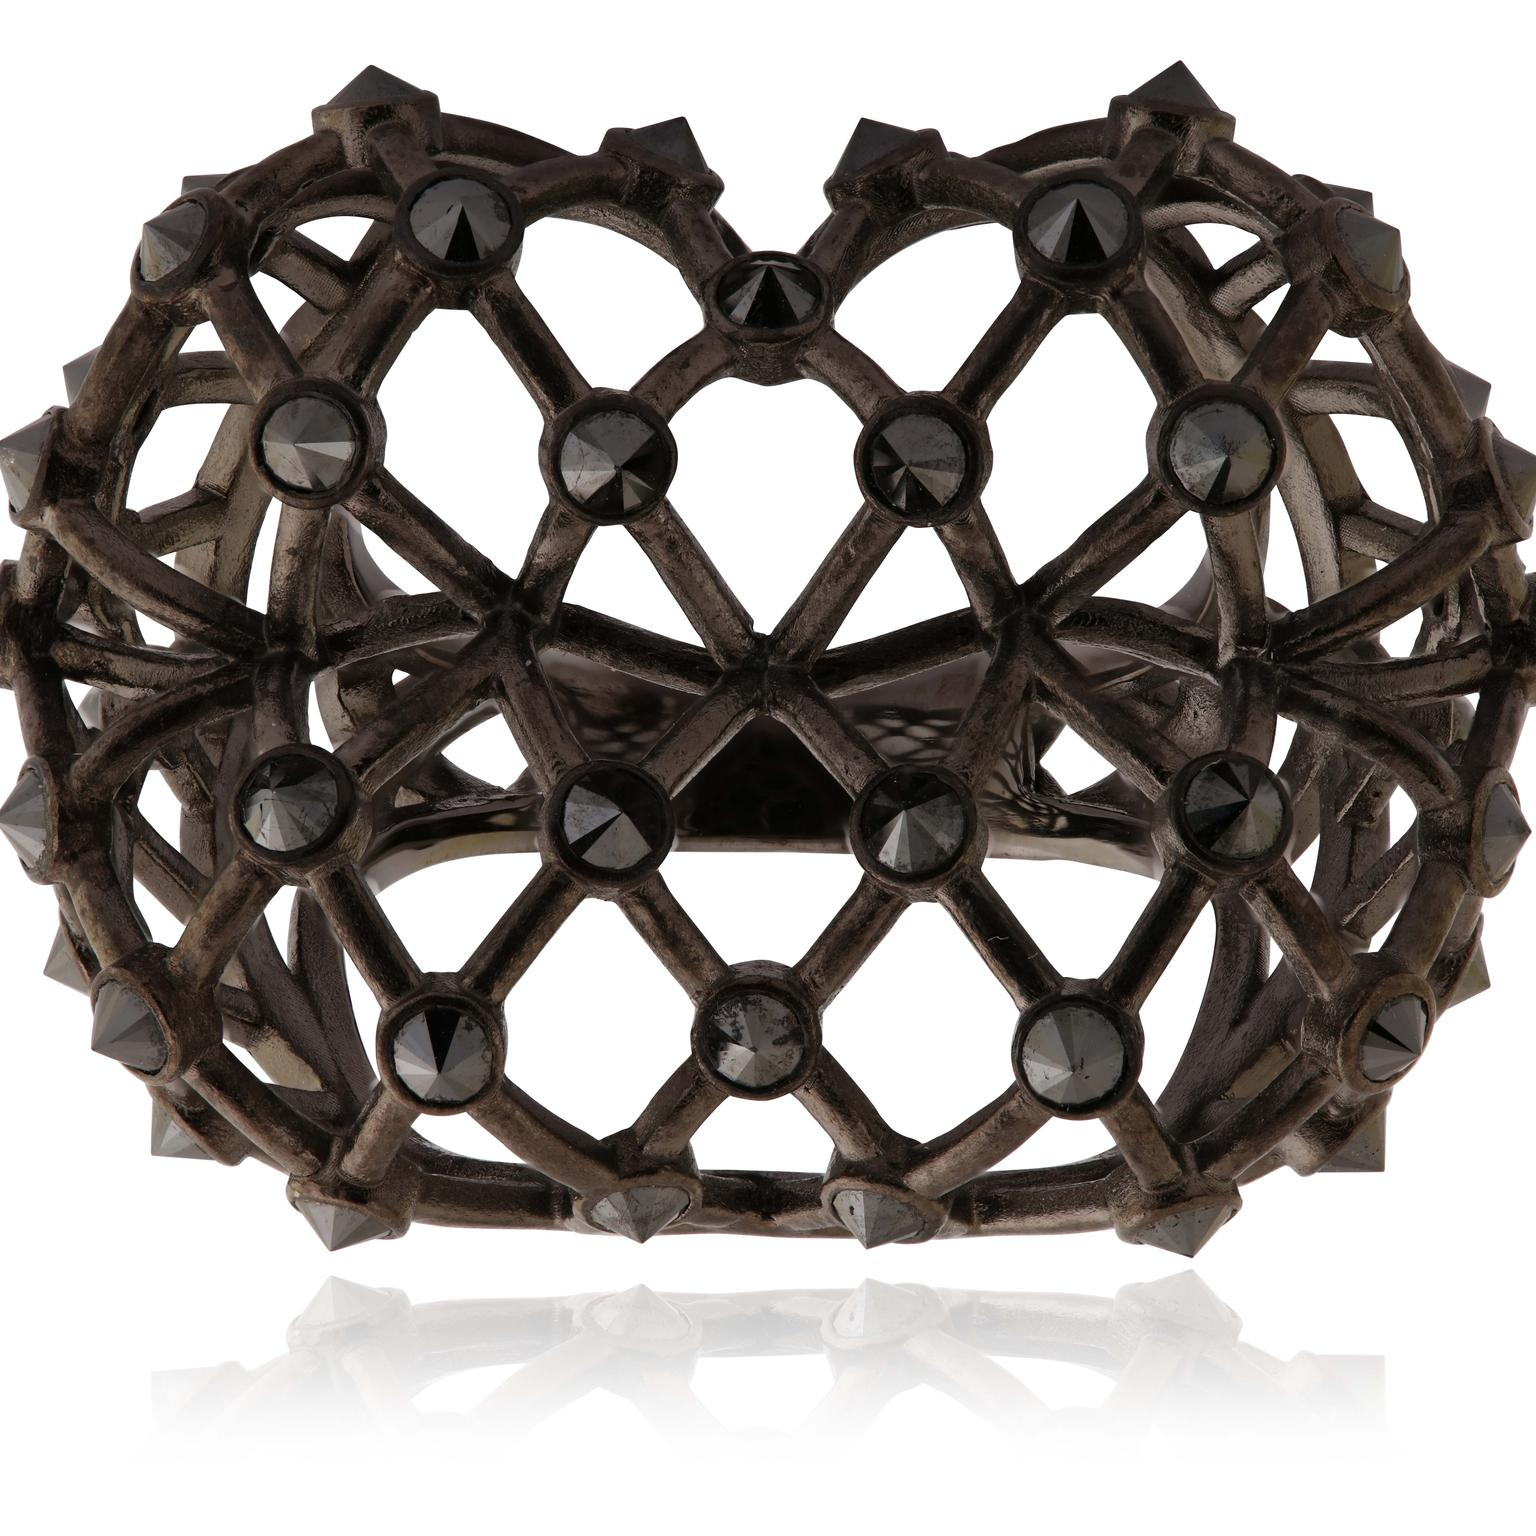 Lydia Courteille La Vie en Rose black diamond cuff bracelet